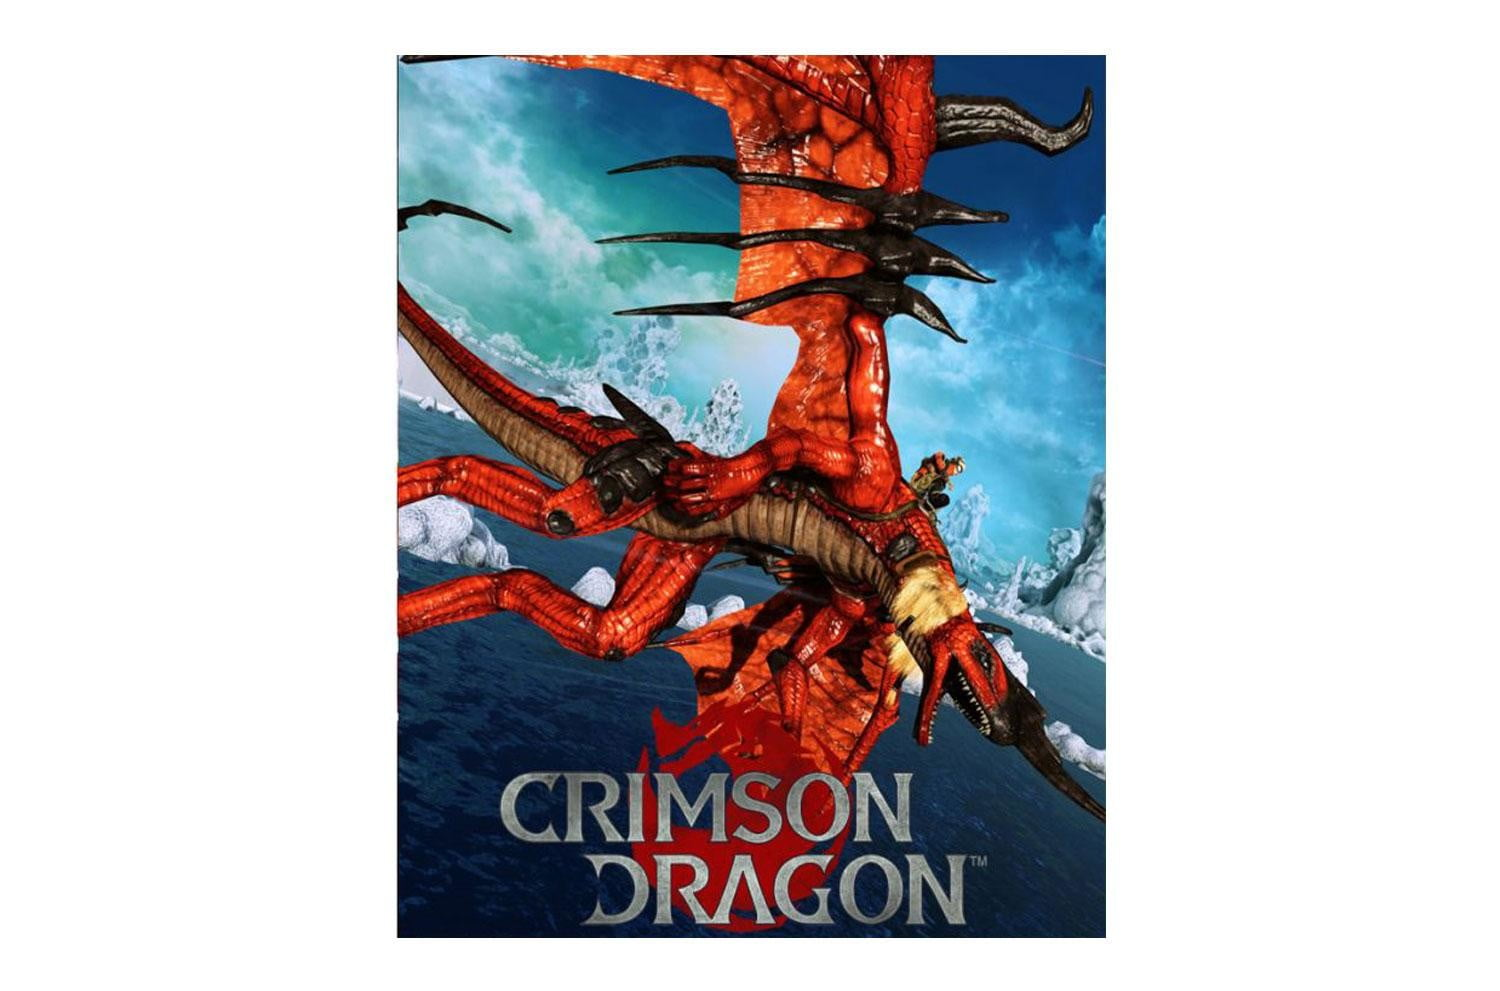 Crimson-Dragon-cover-art